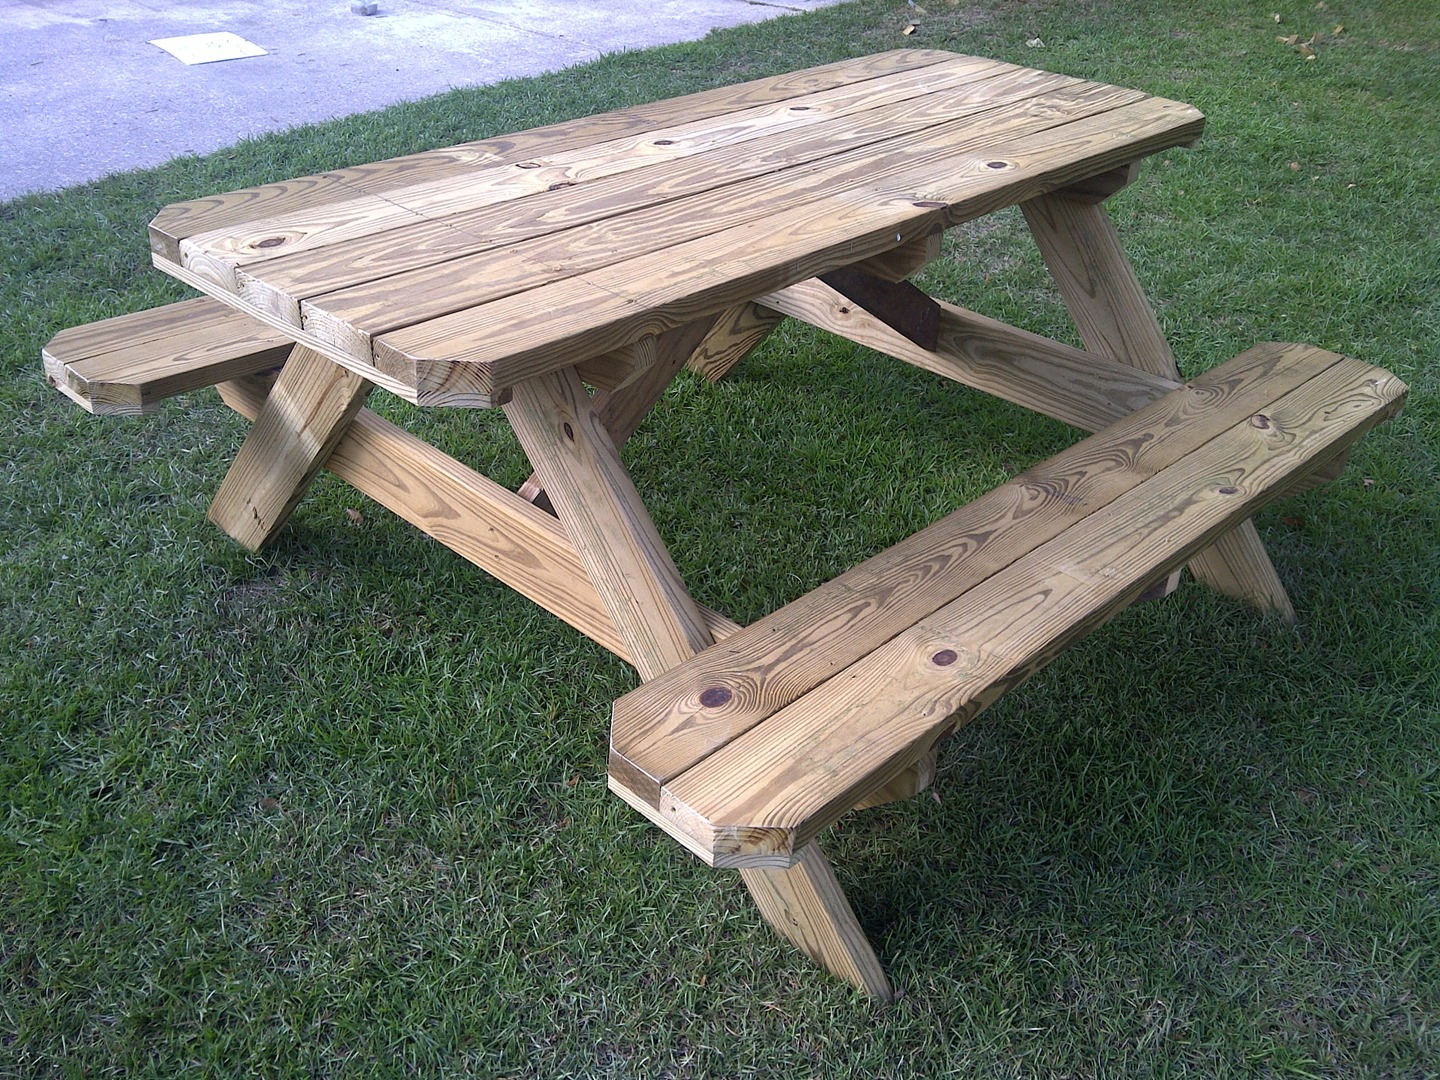 amusing with astonishing wooden tables best rustic and the duluthhomeloan table in picnic outdoor cooler benches for diy sale decoration